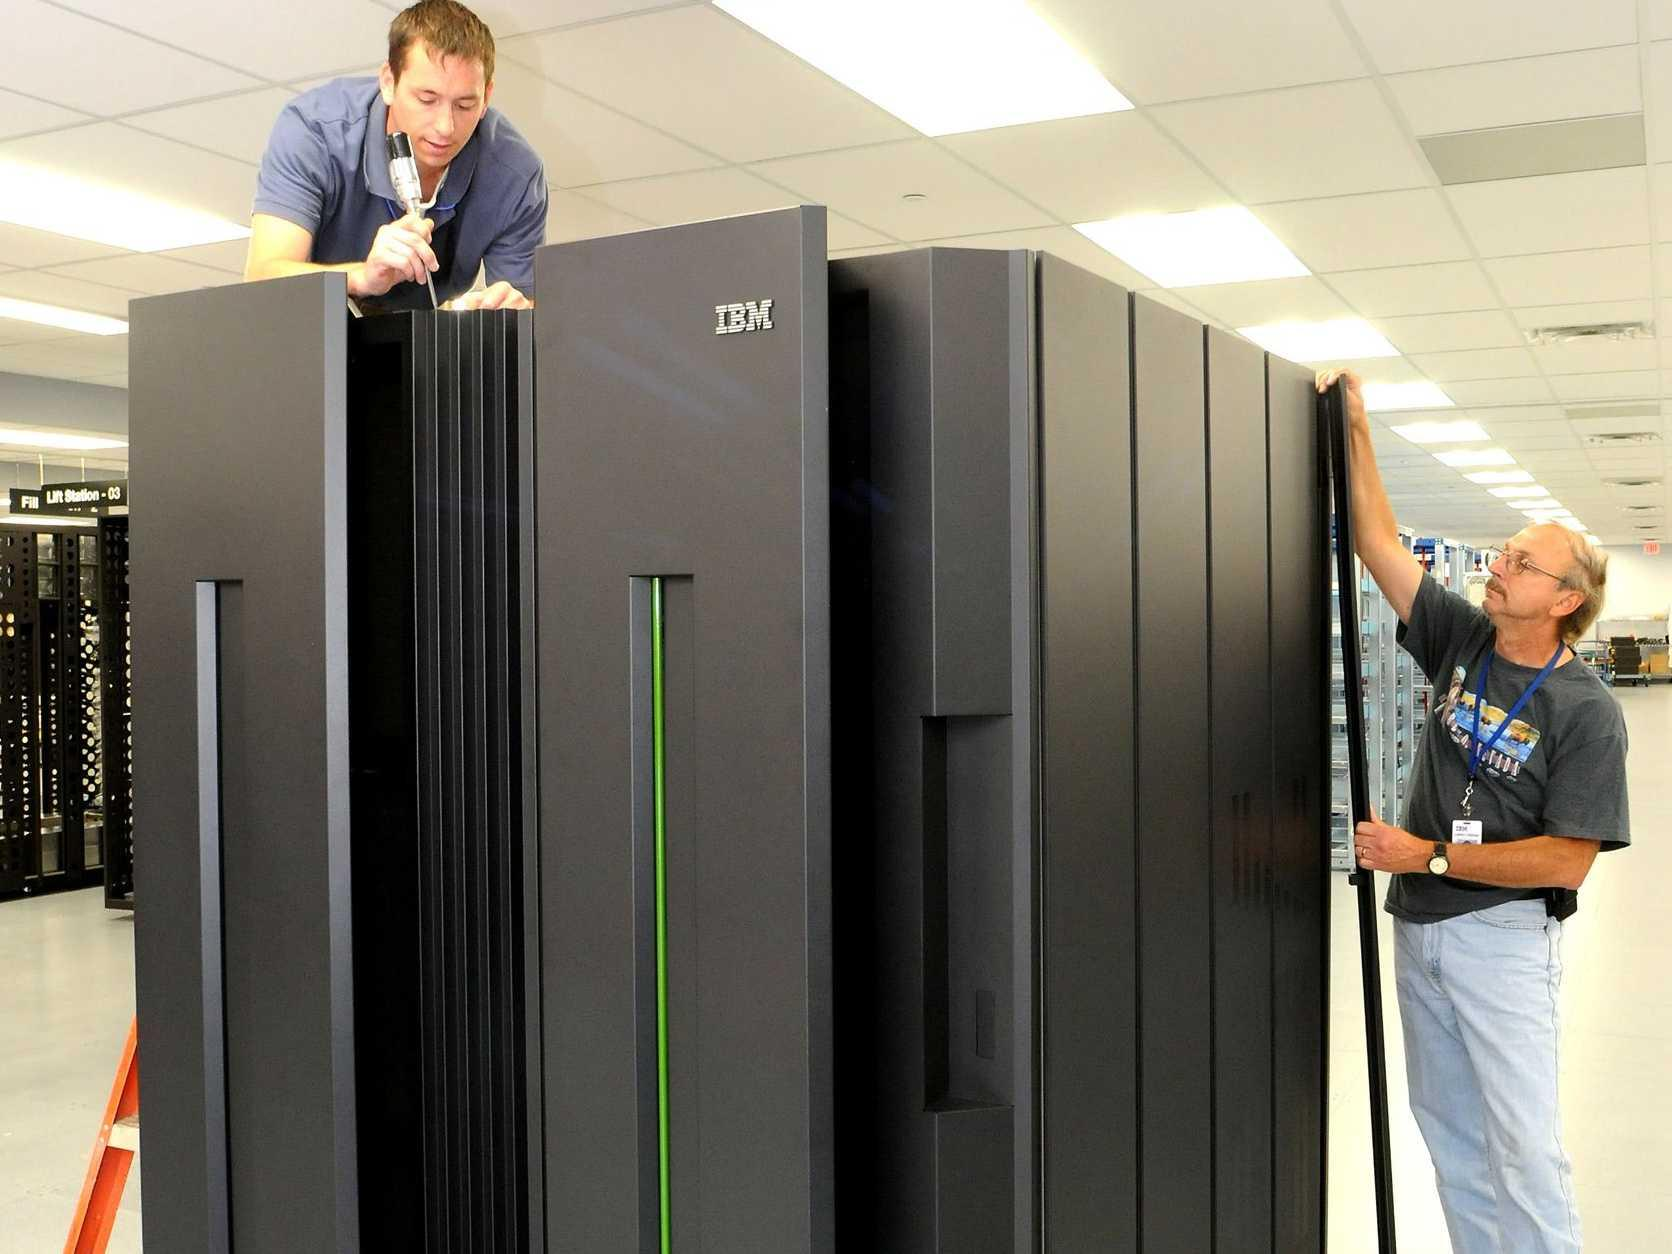 IBM was saved this quarter by one of its oldest product lines: the mainframe